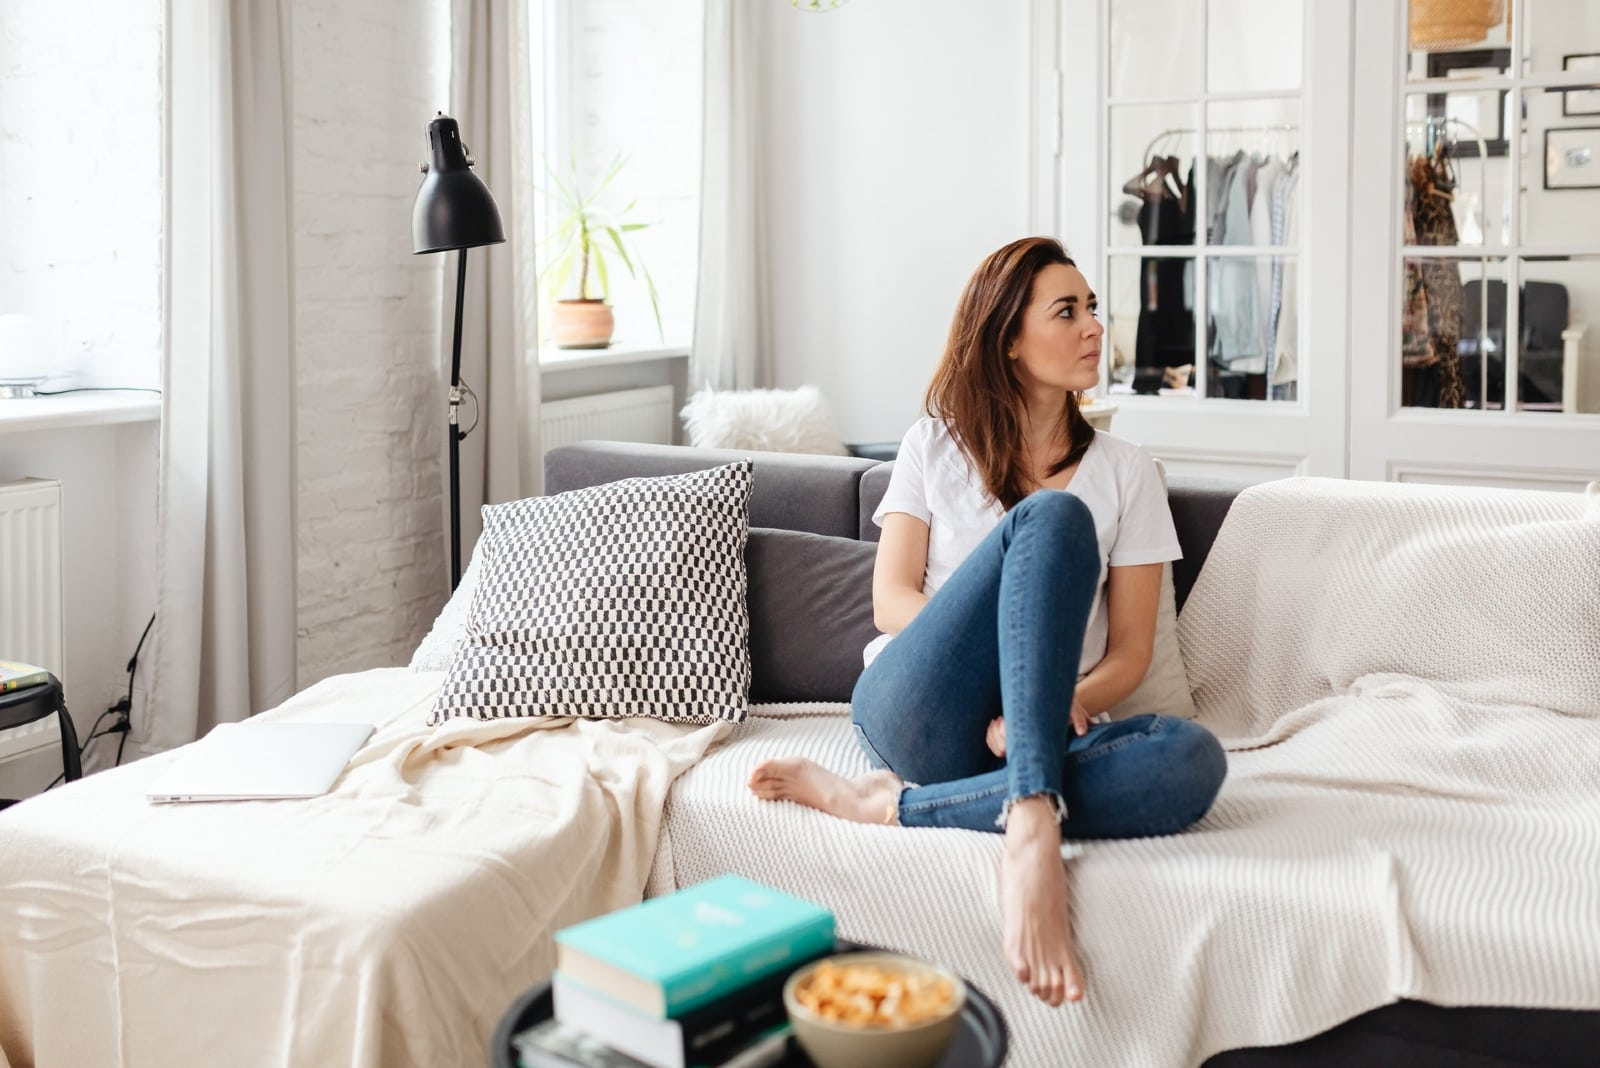 pensive woman in white t-shirt sitting on sofa